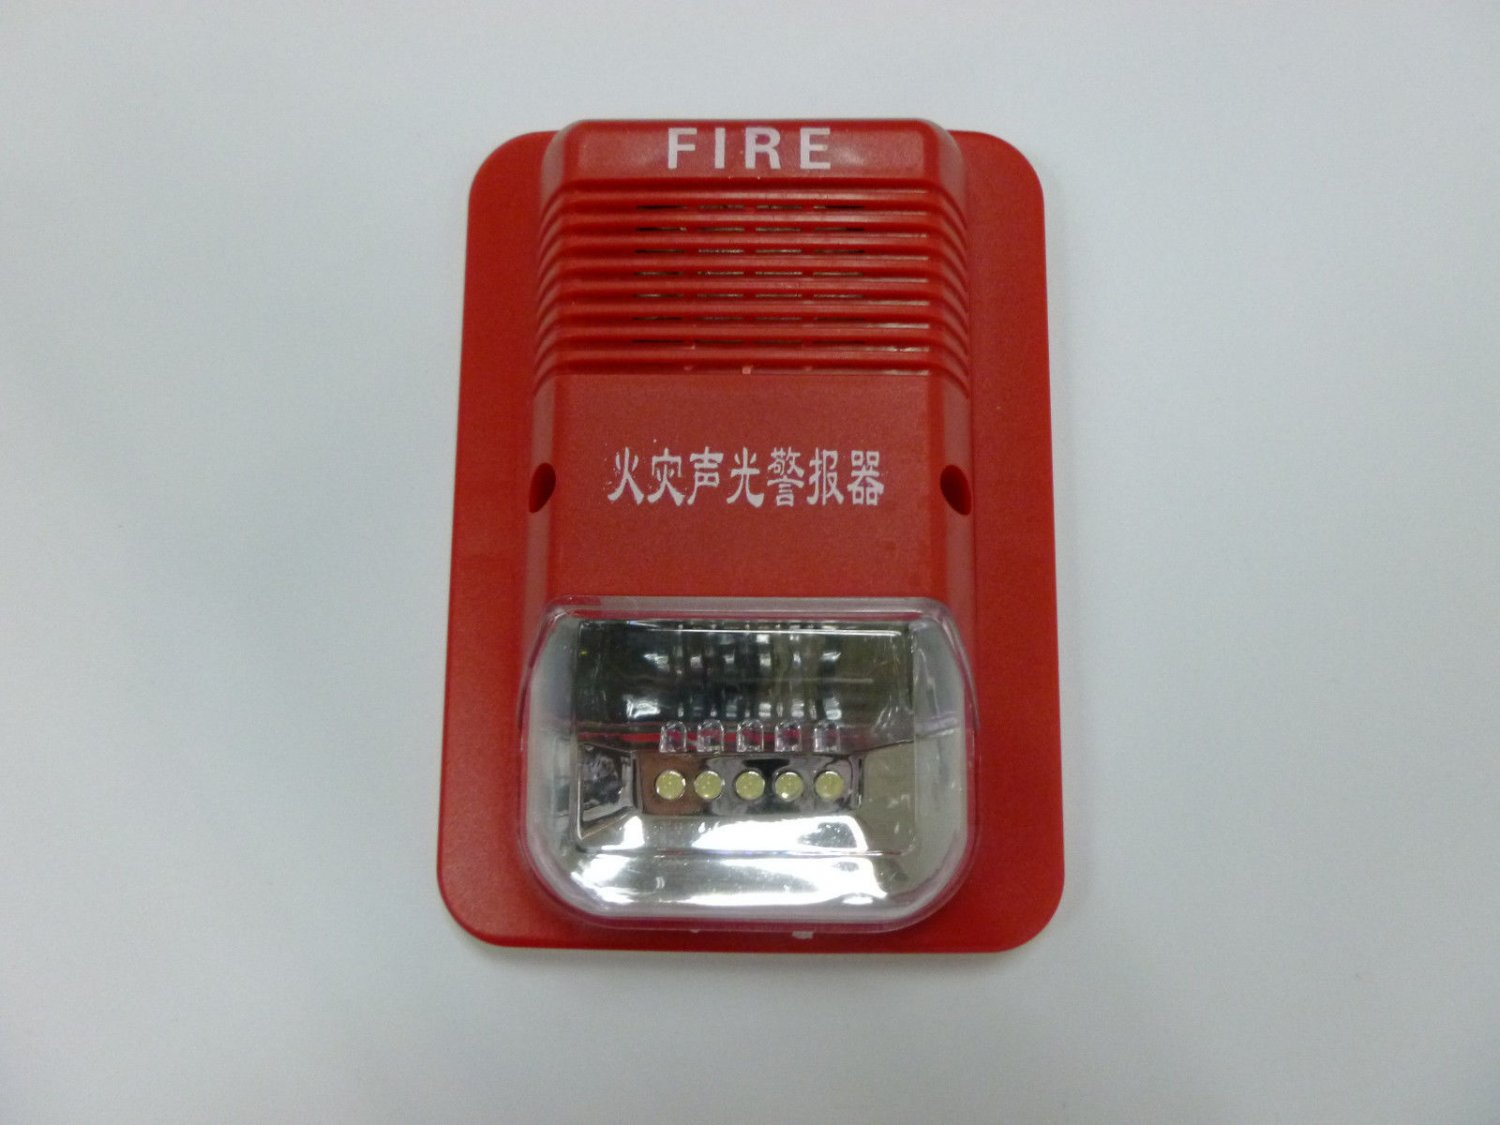 SG109 9-28VDC Conventional Manual Call Point Fire Emergency Strobe Alarm Siren